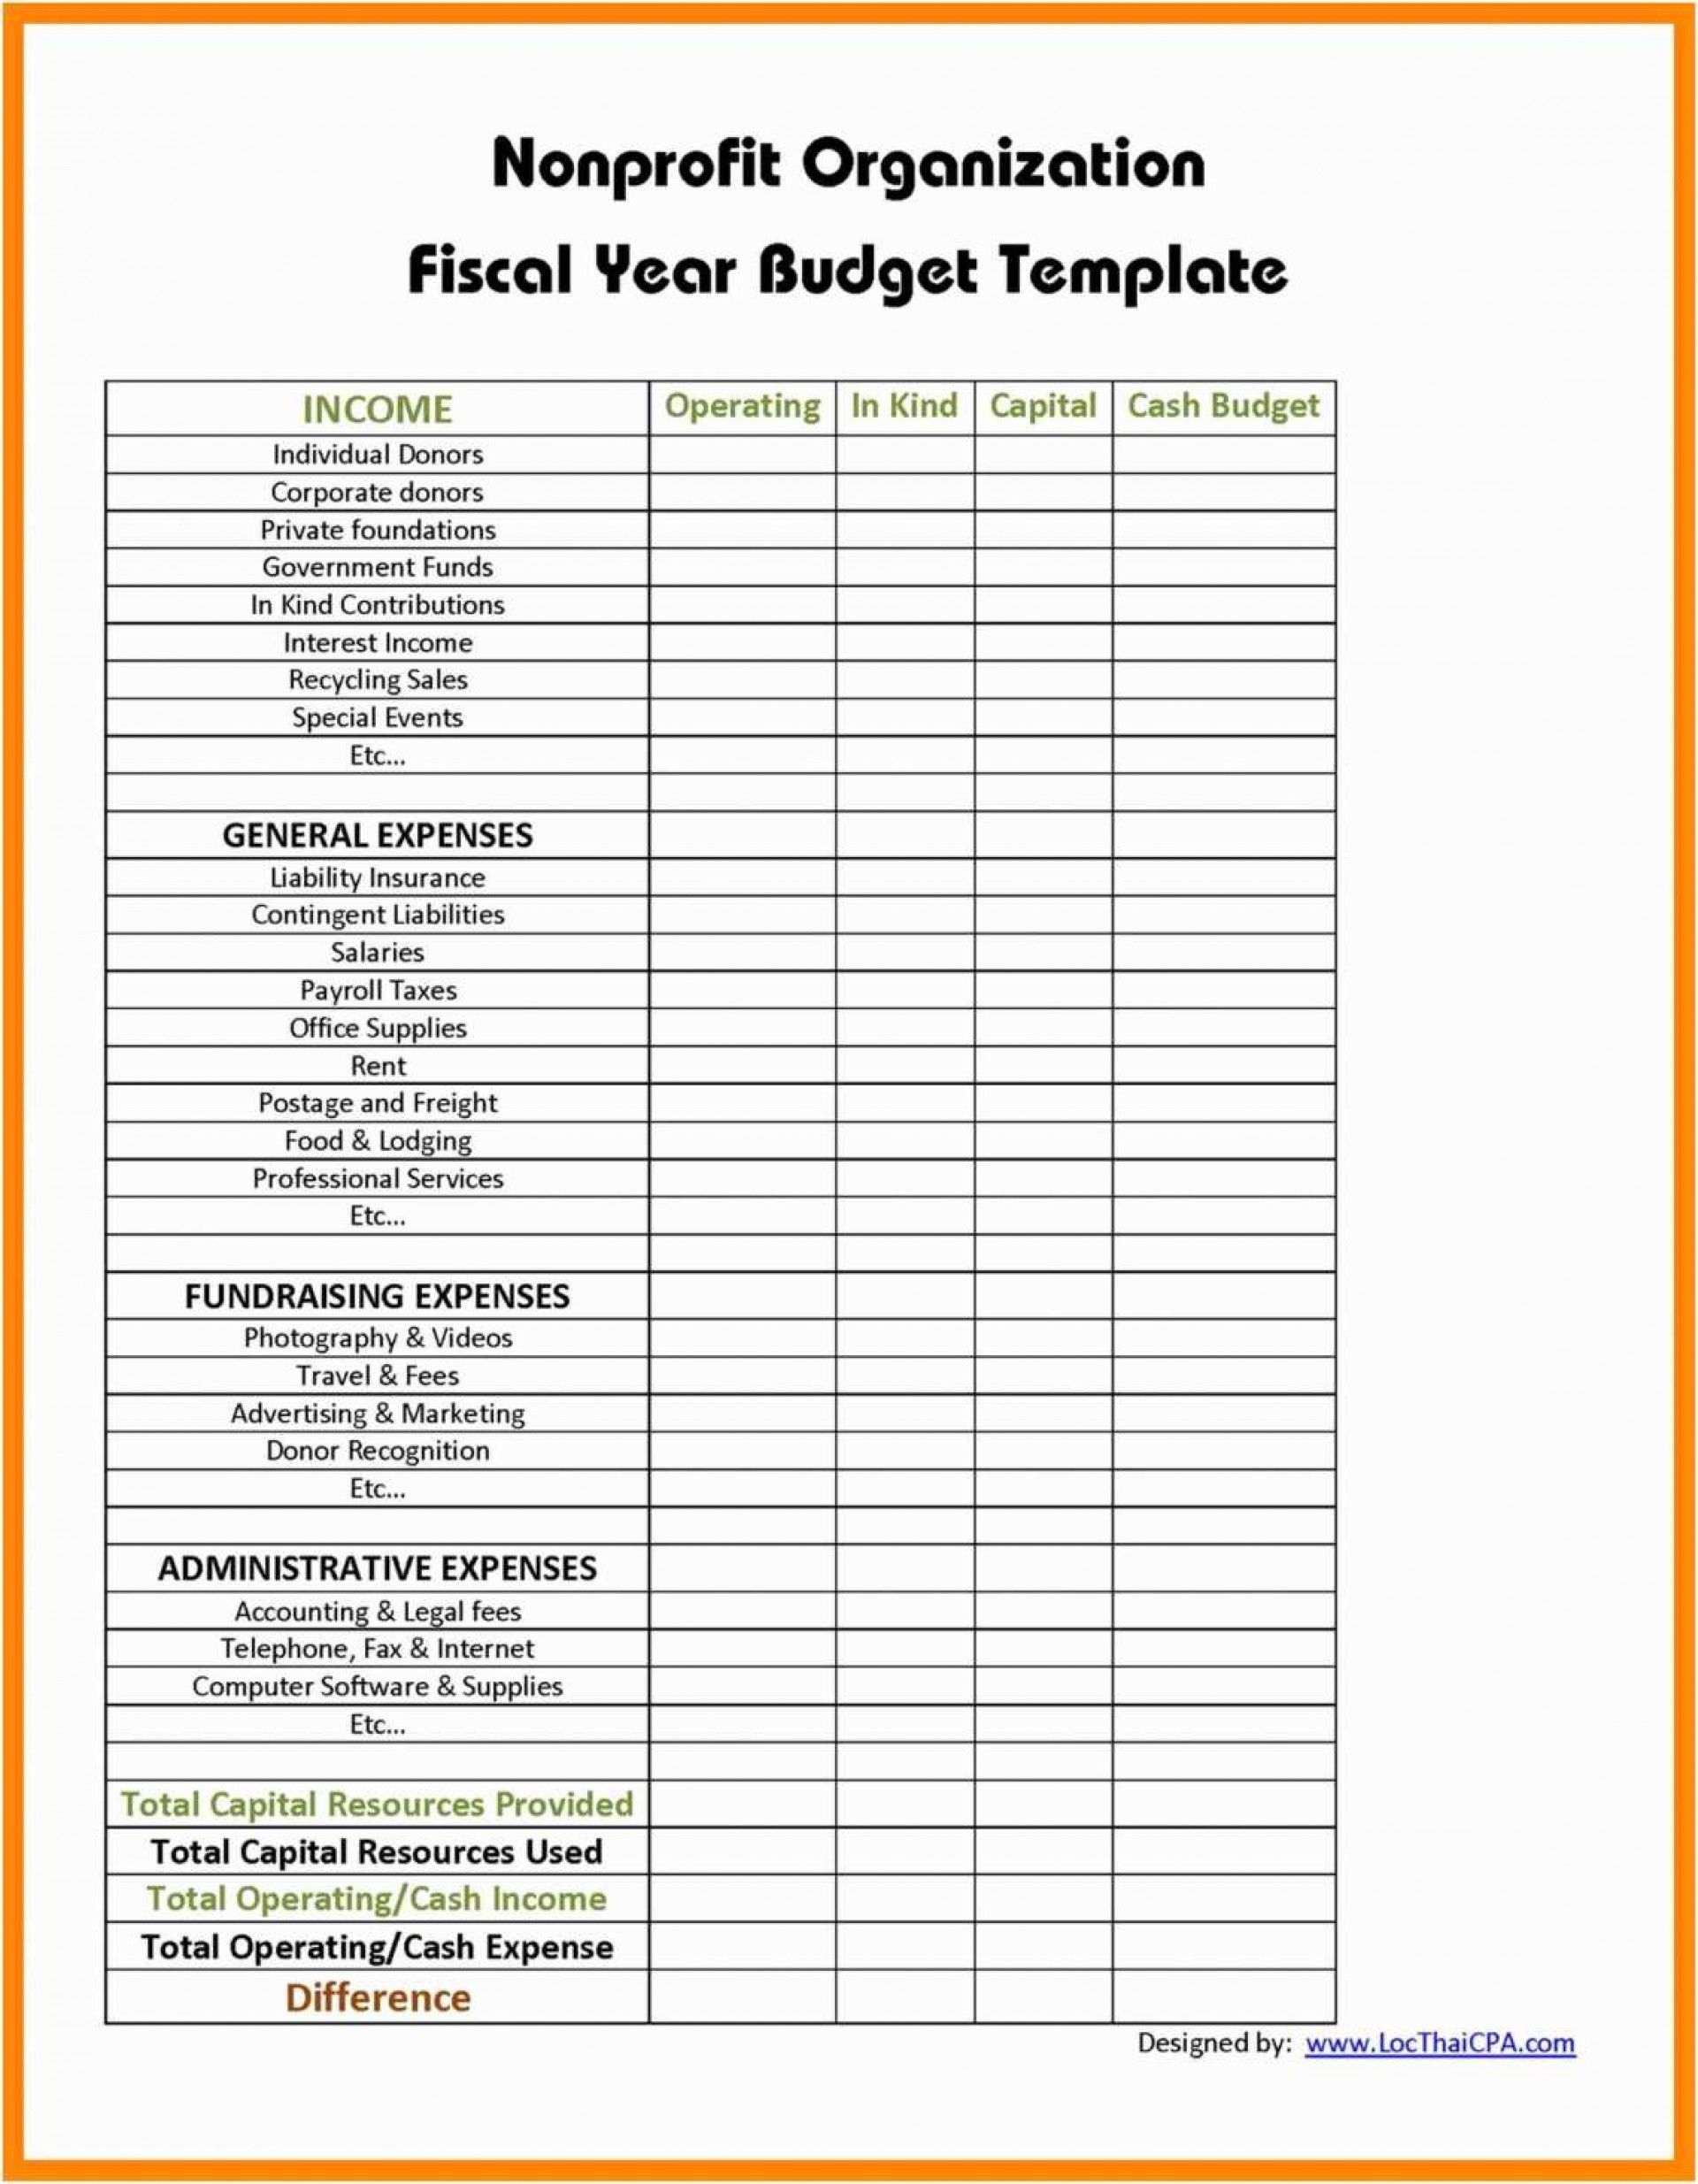 Personal Excel Templates For Non Profit Accounting Throughout Excel Templates For Non Profit Accounting Templates